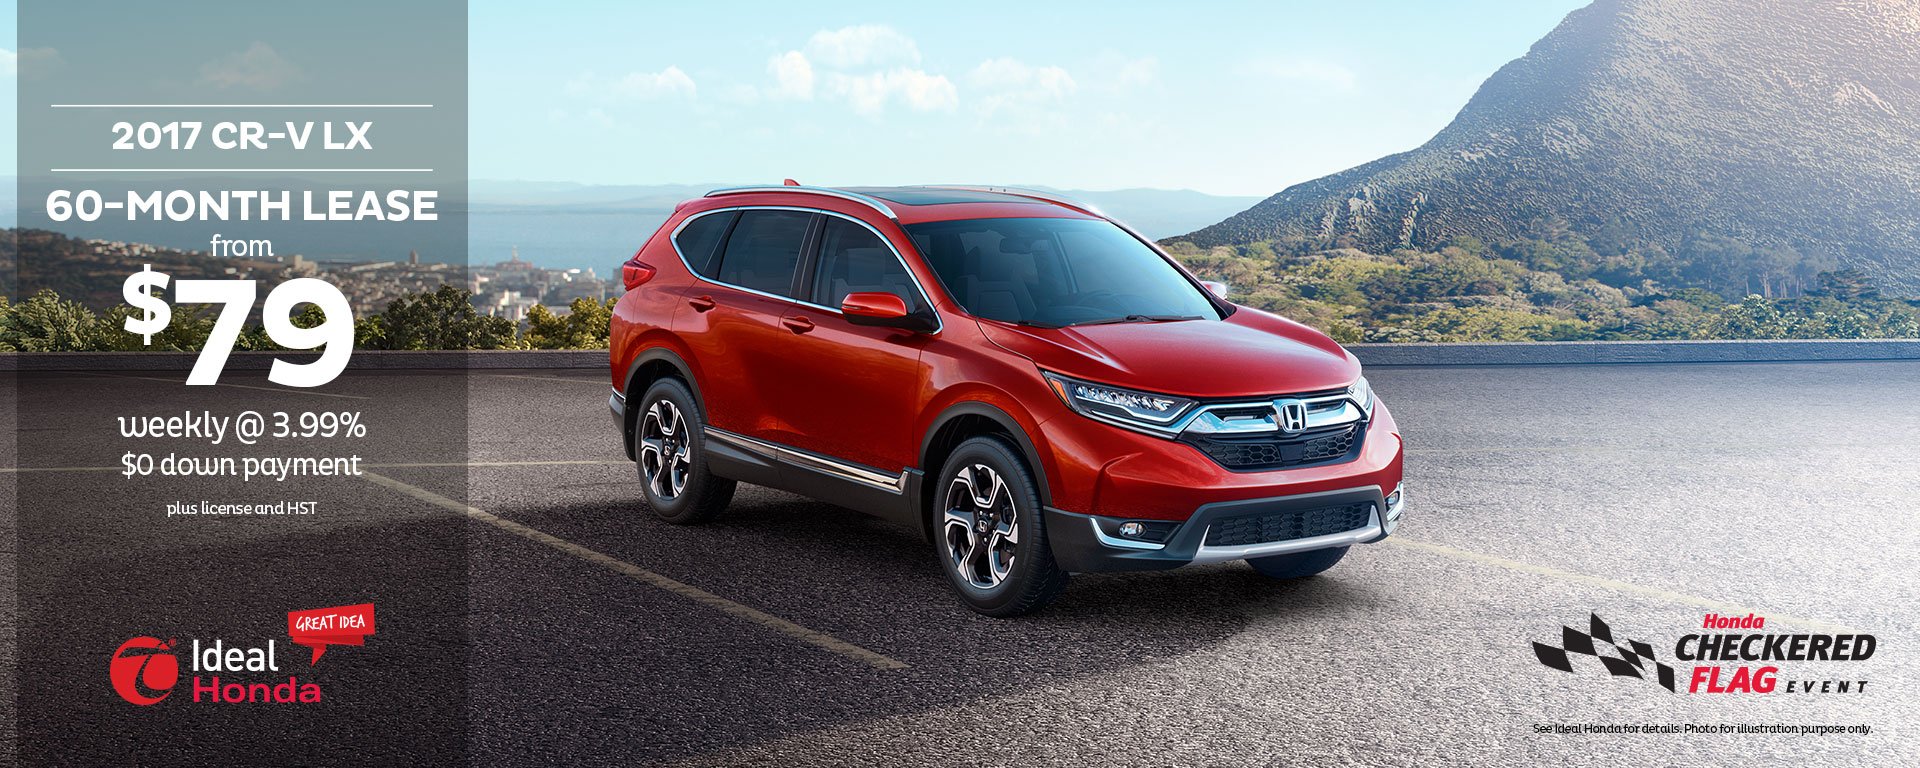 2017 CR-V LX 60 Month Lease from $79